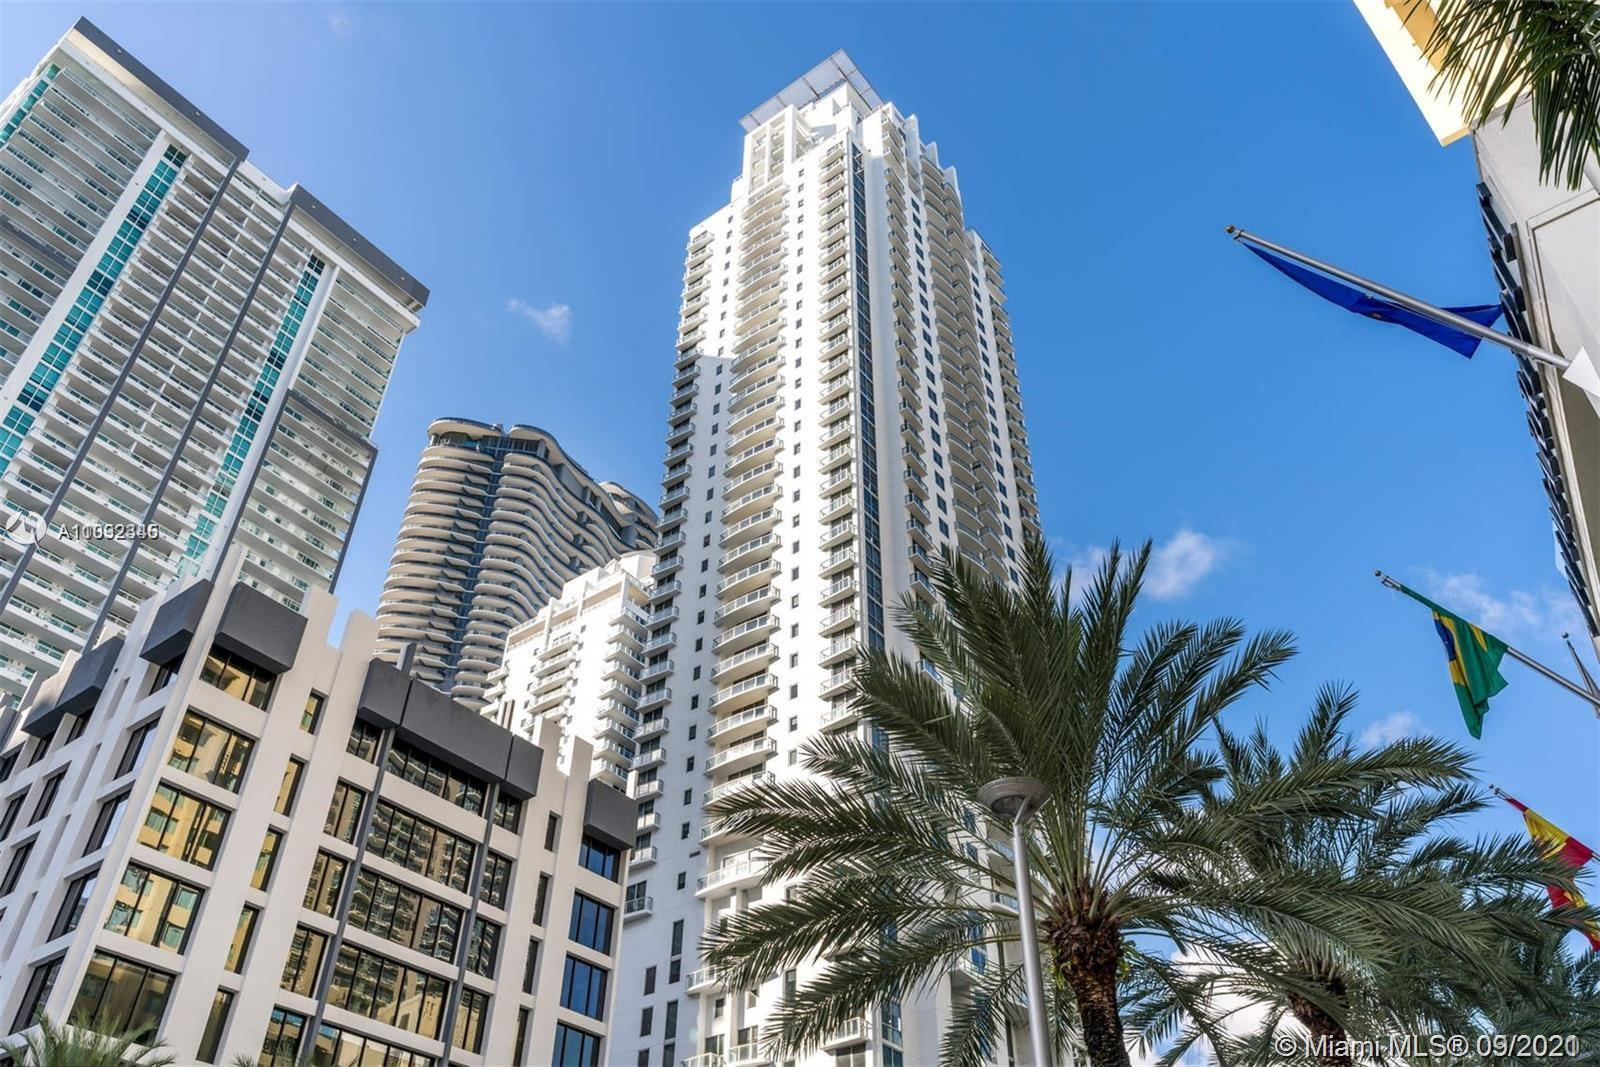 Beautiful 1 Bed/1 Bath Corner Unit on a high floor facing West with amazing skyline views of Miami a